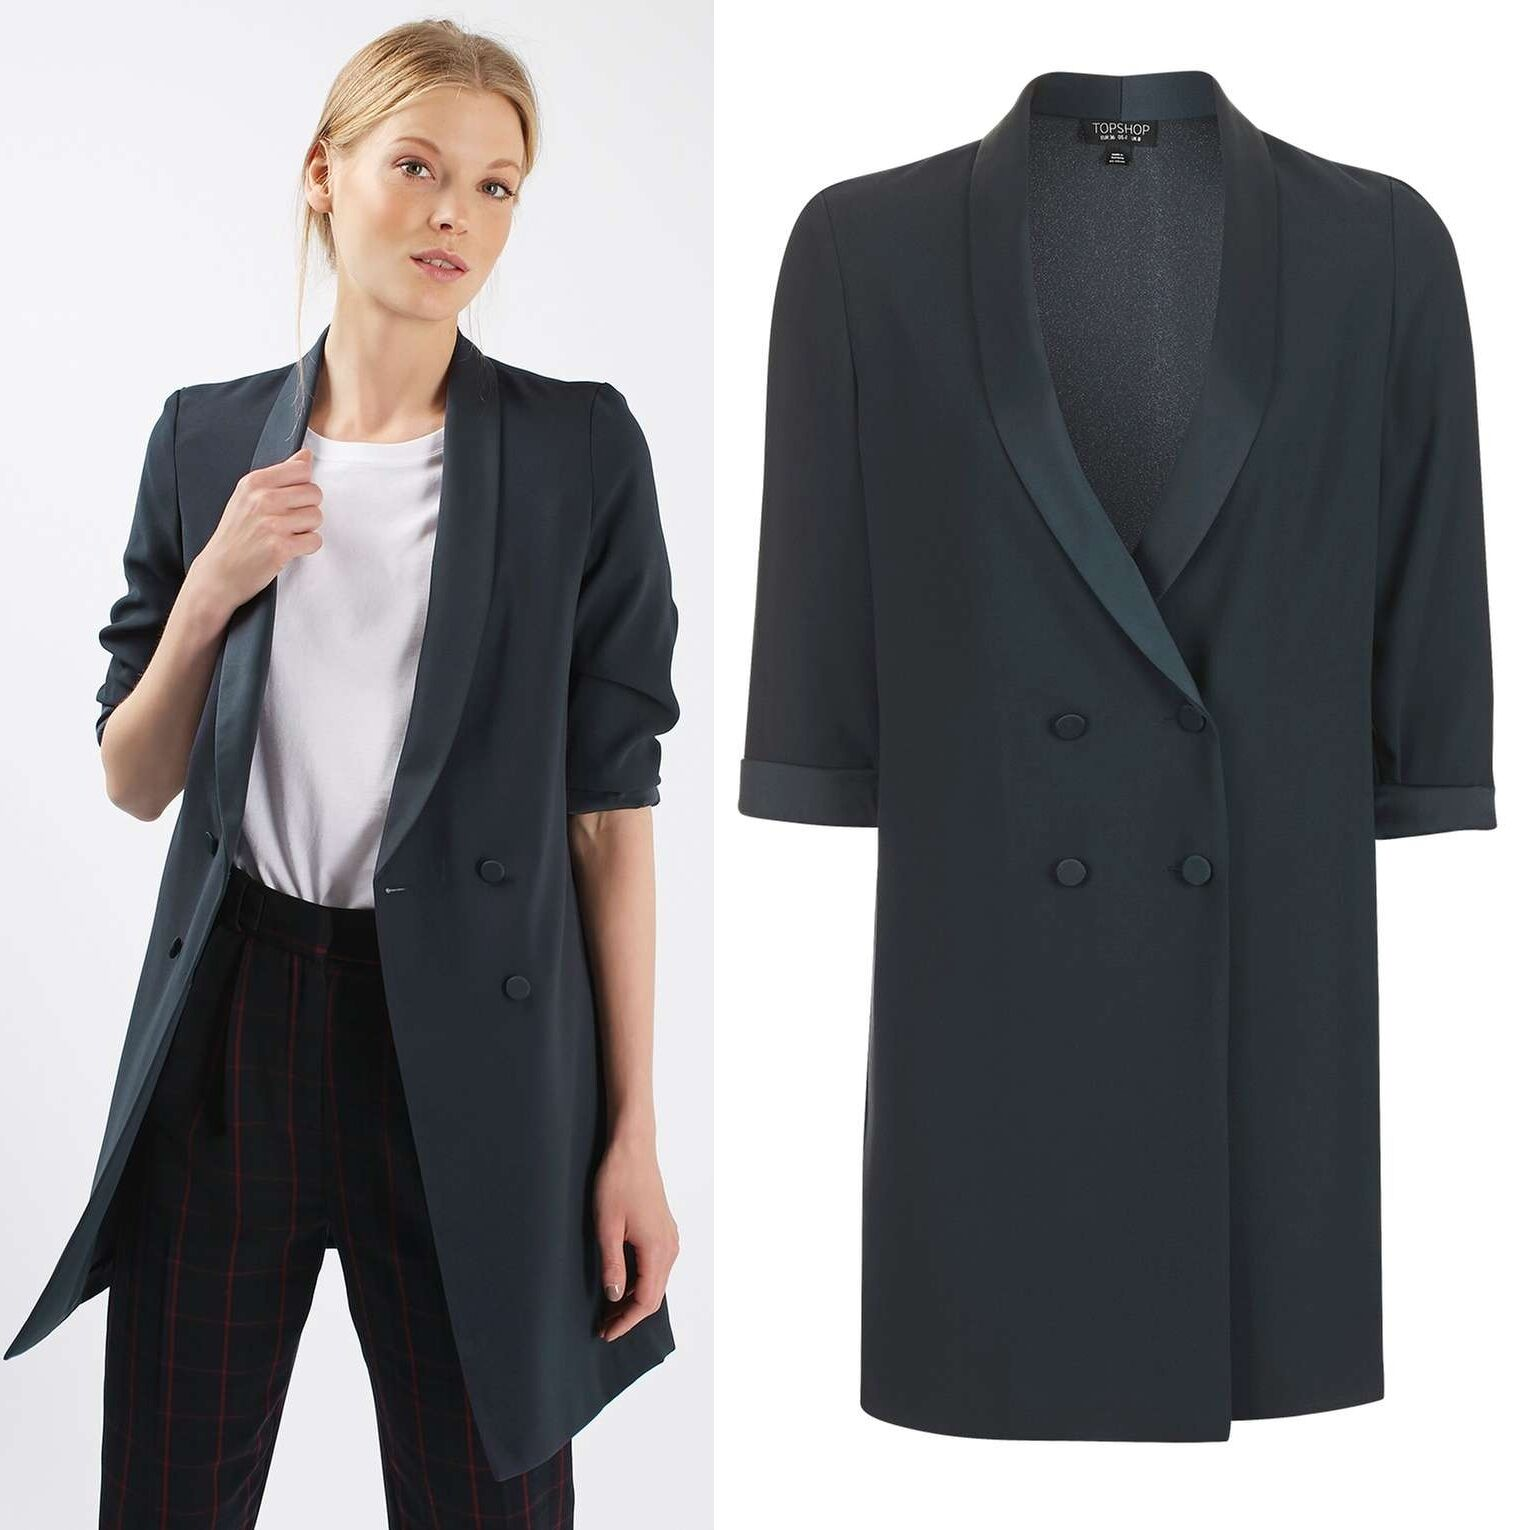 Details about TOPSHOP Soft Tailored Blazer Jacket Dress in Navy Blue